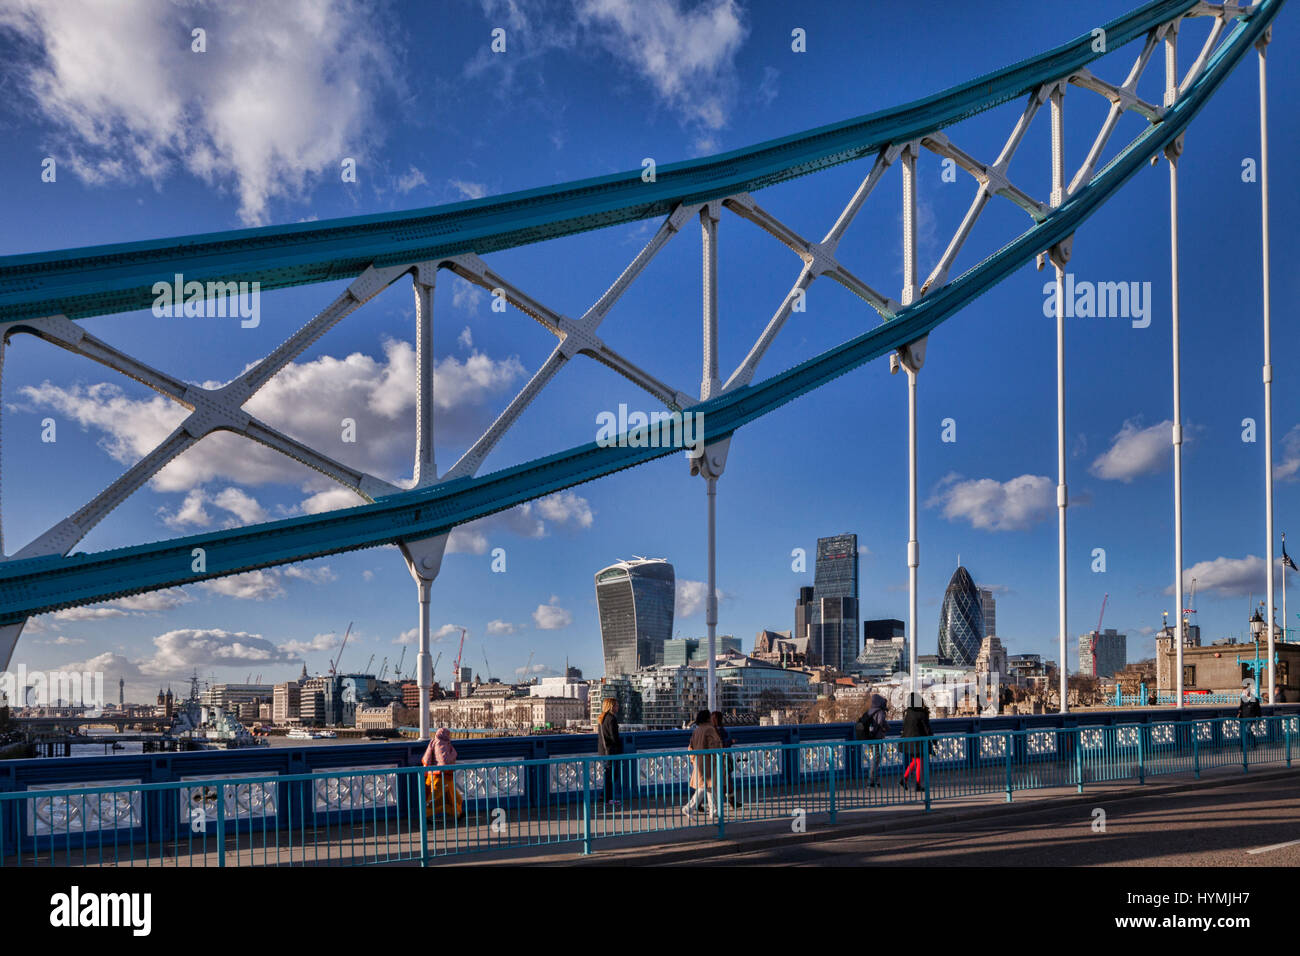 London skyline with the Walkie Talkie, the Cheese Grater and the Gherkin, seen through the superstructure of Tower - Stock Image